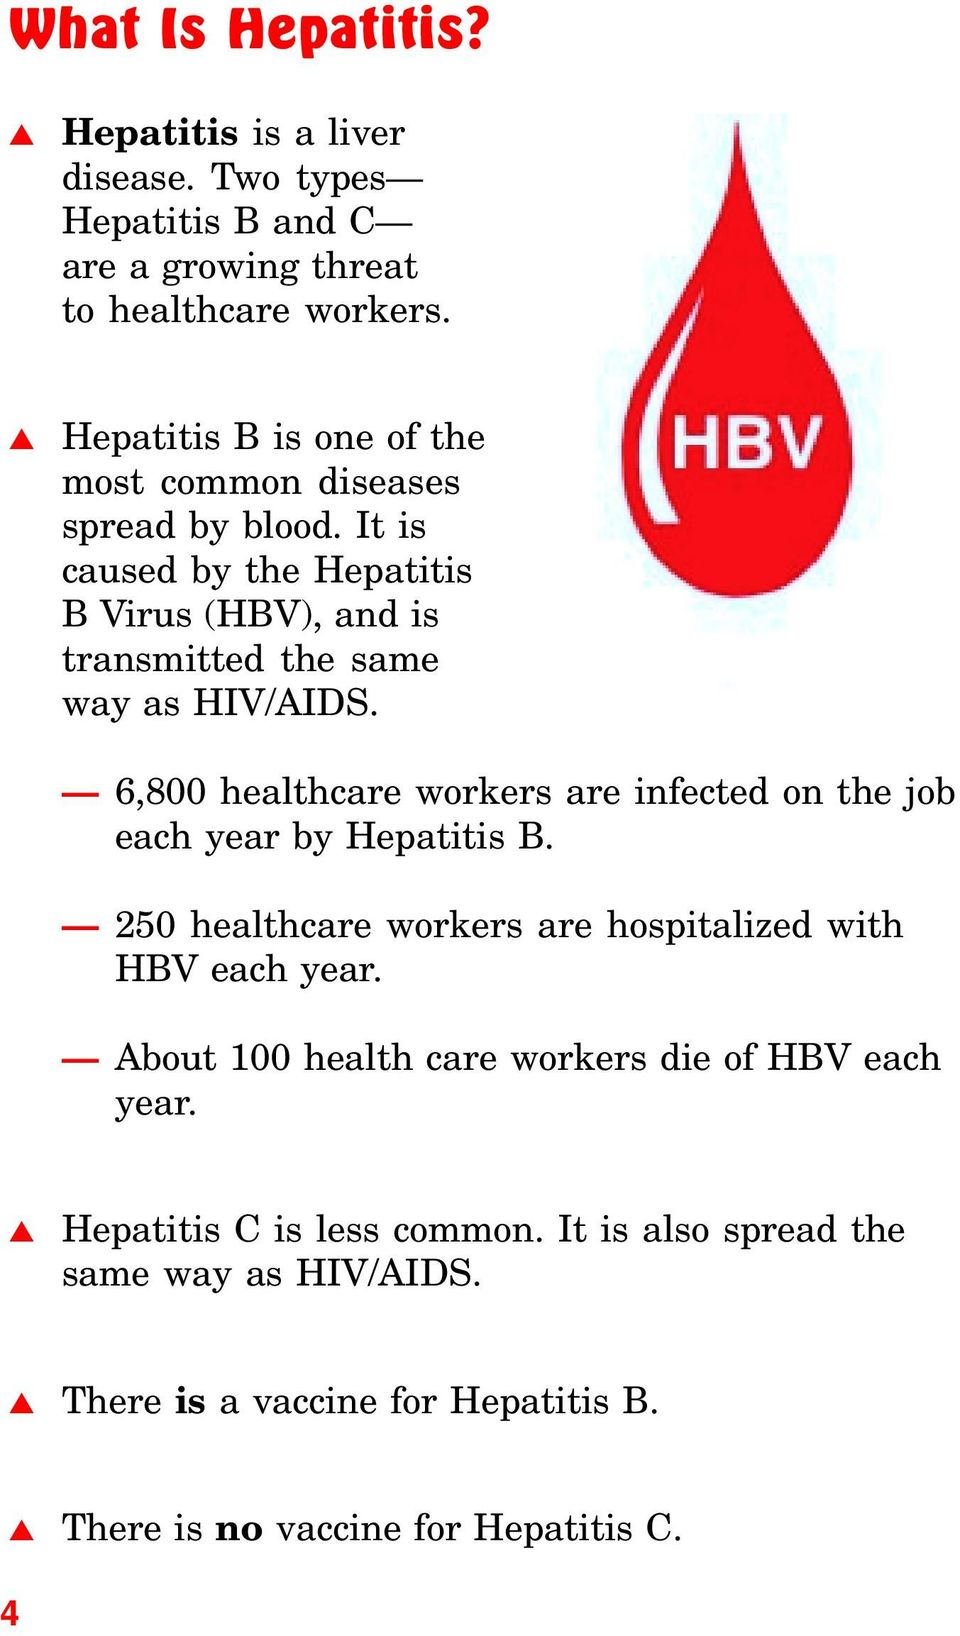 HBV 6,800 healthcare workers are infected on the job each year by Hepatitis B. 250 healthcare workers are hospitalized with HBV each year.